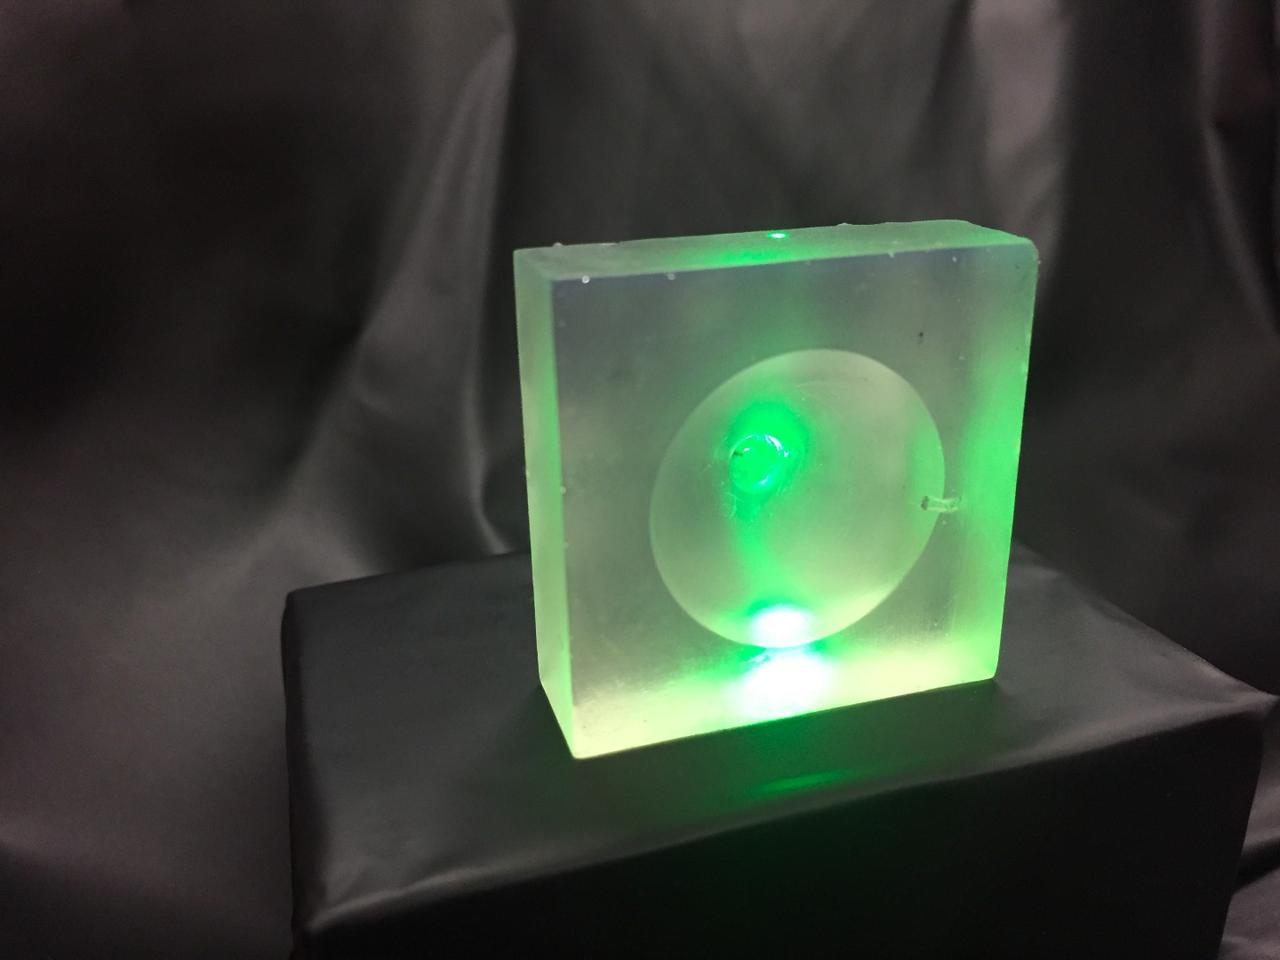 Nanyang Technological University's proof-of-concept model of the transducer lens